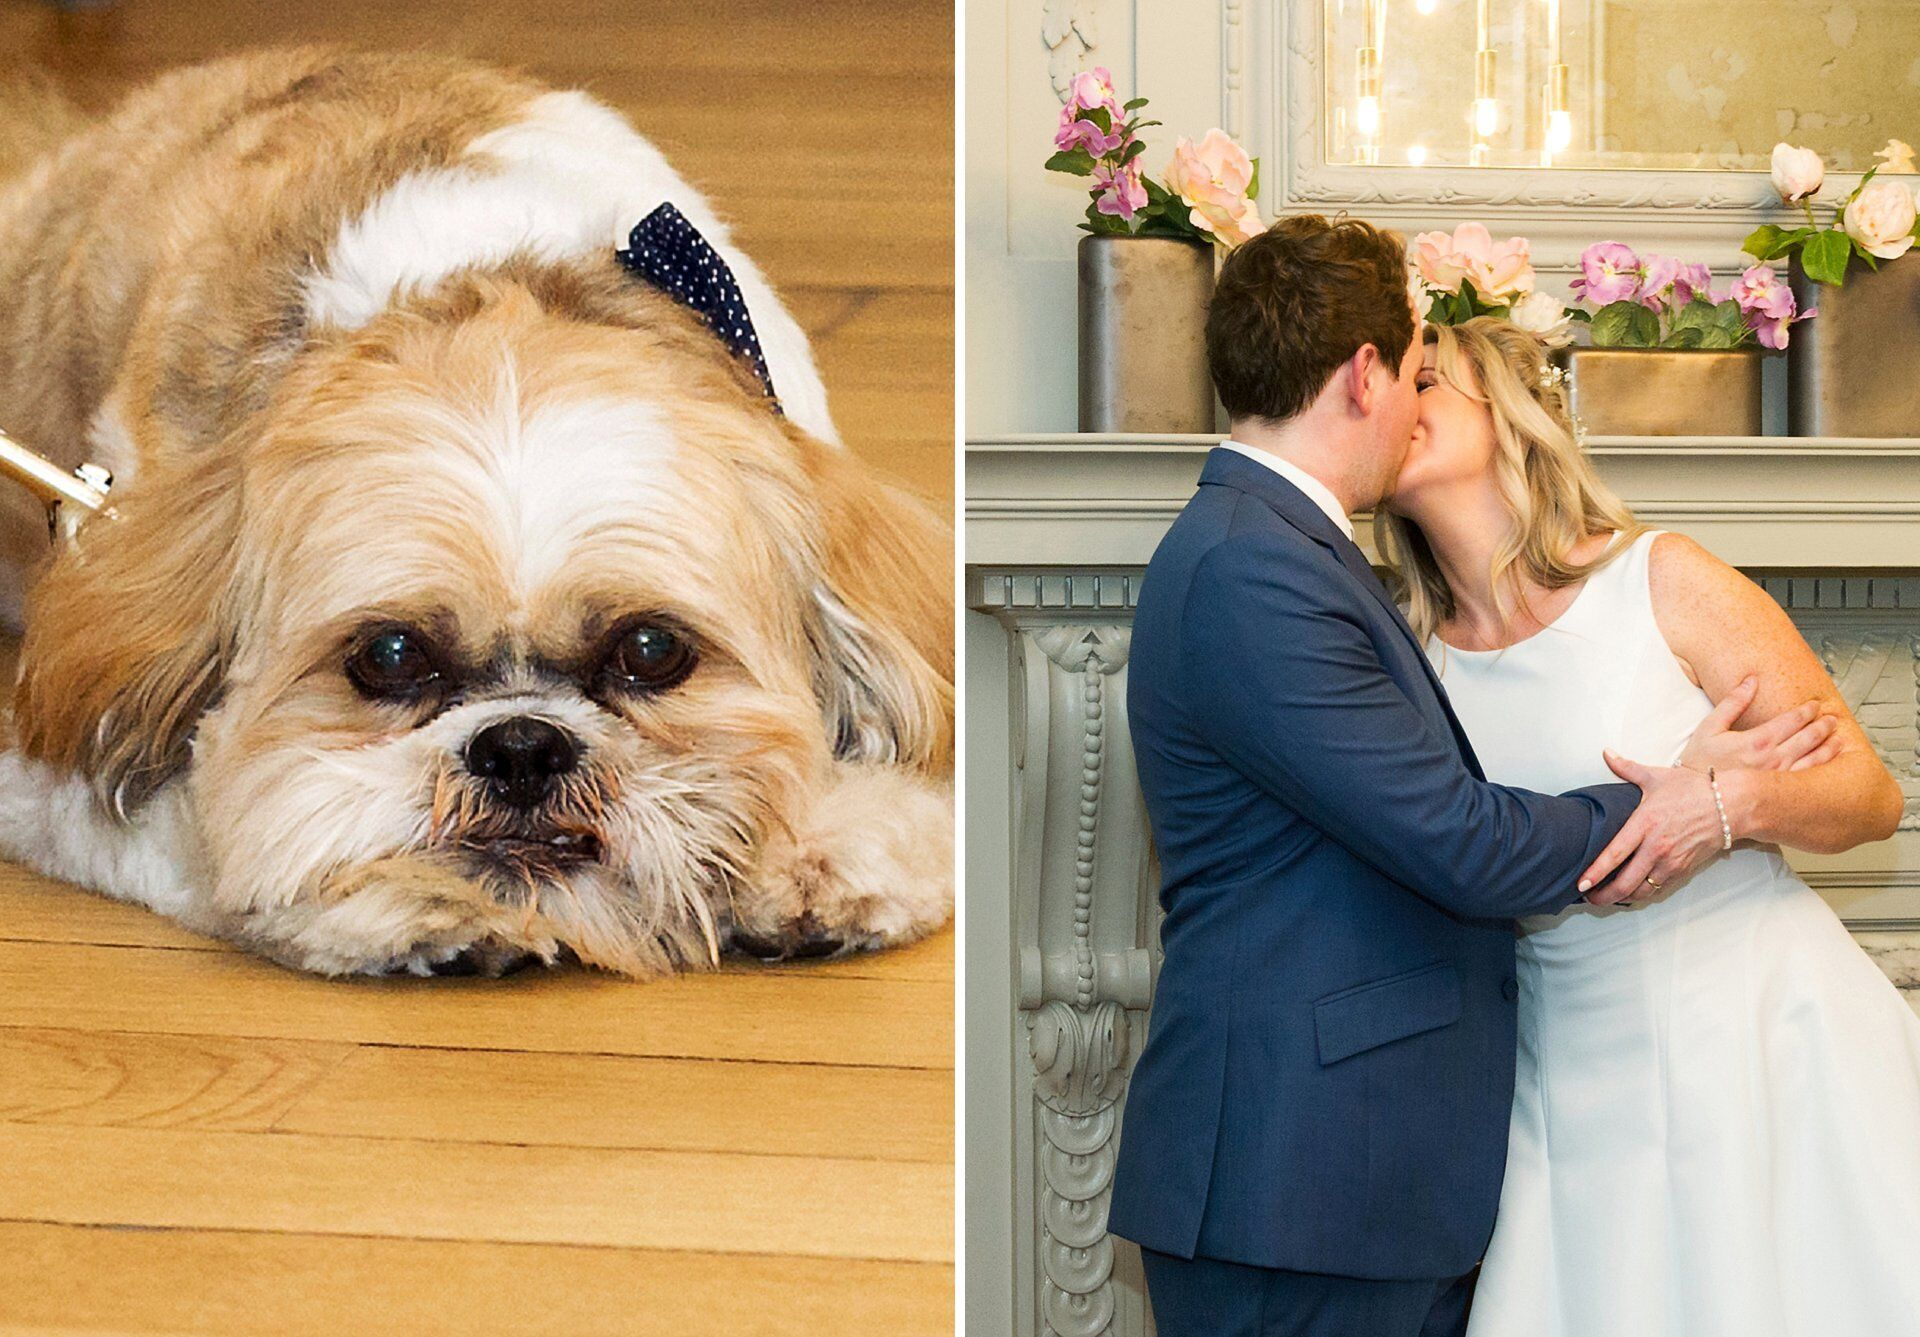 shih tzu dog watches owners kiss after their old marylebone town hall wedding